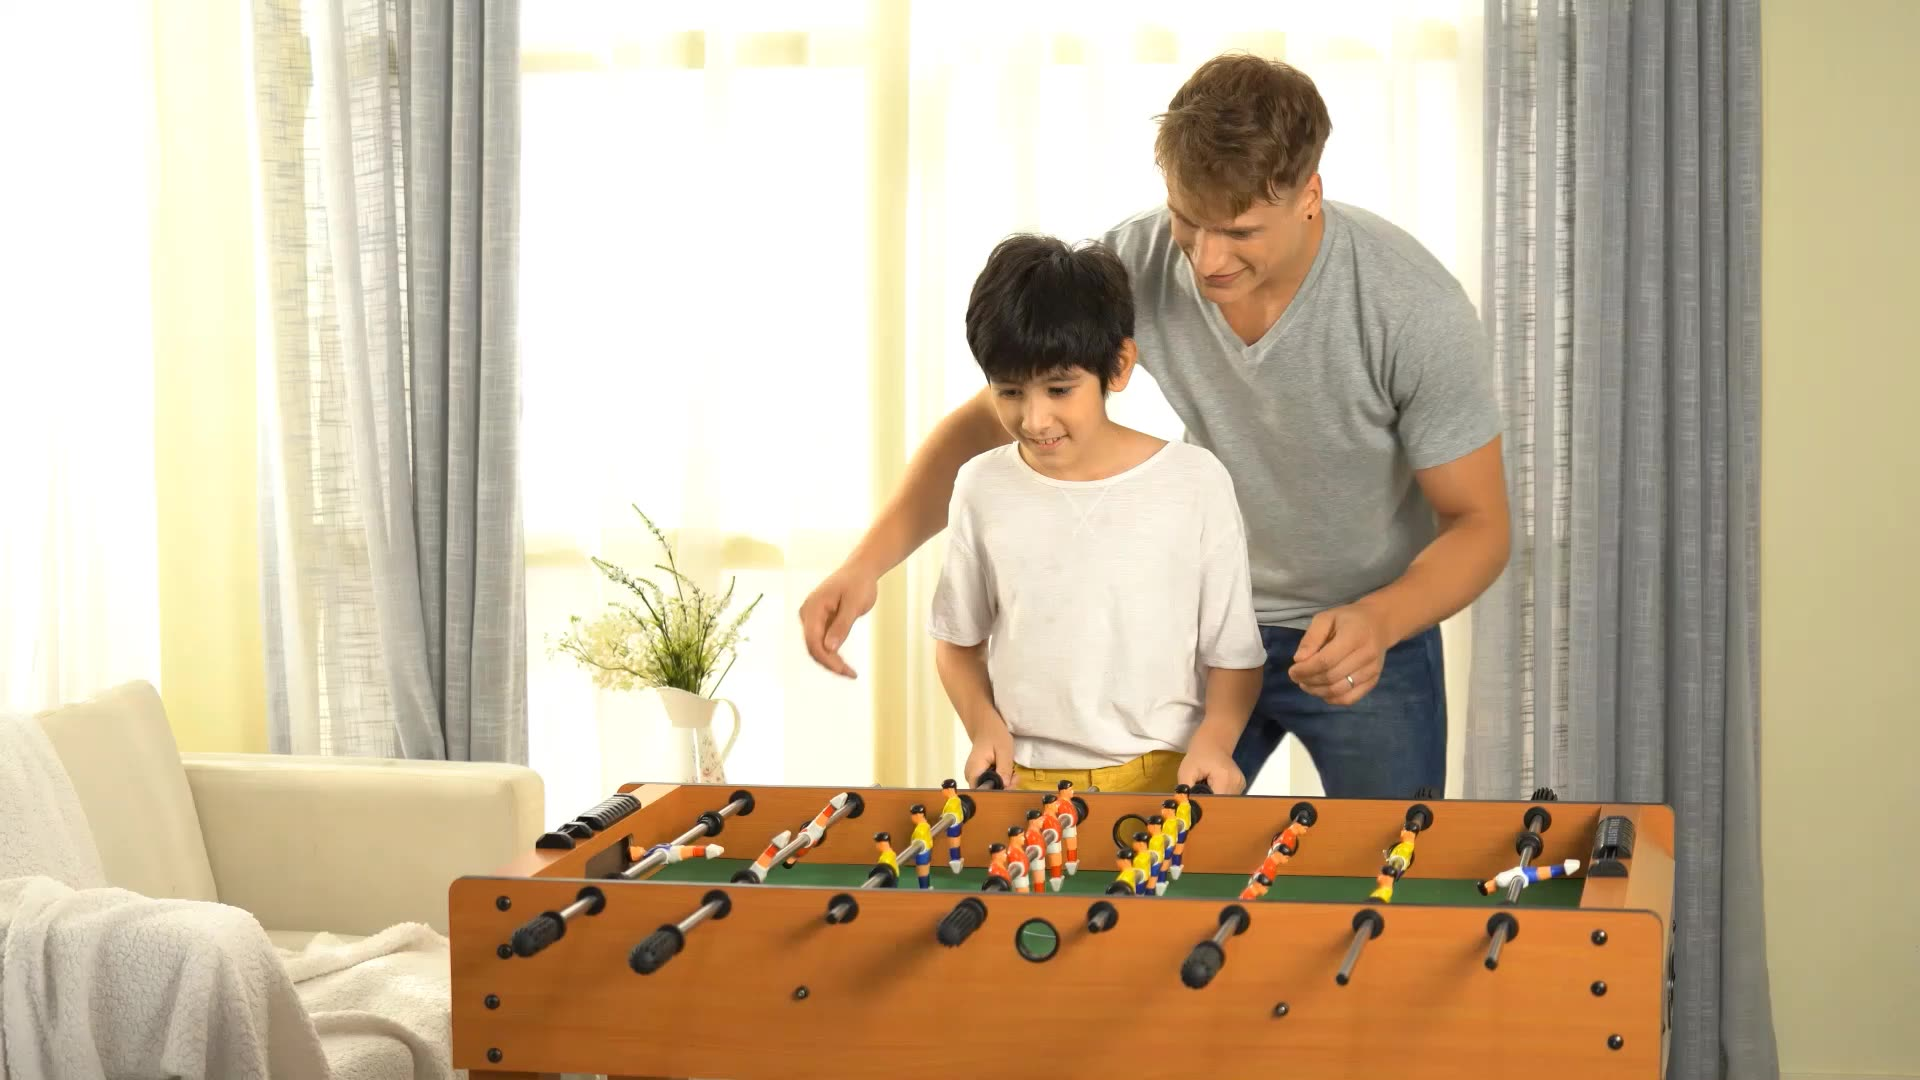 Professional Wooden Football Board Wholesale Factory Price Adults Children Game Soccer Table